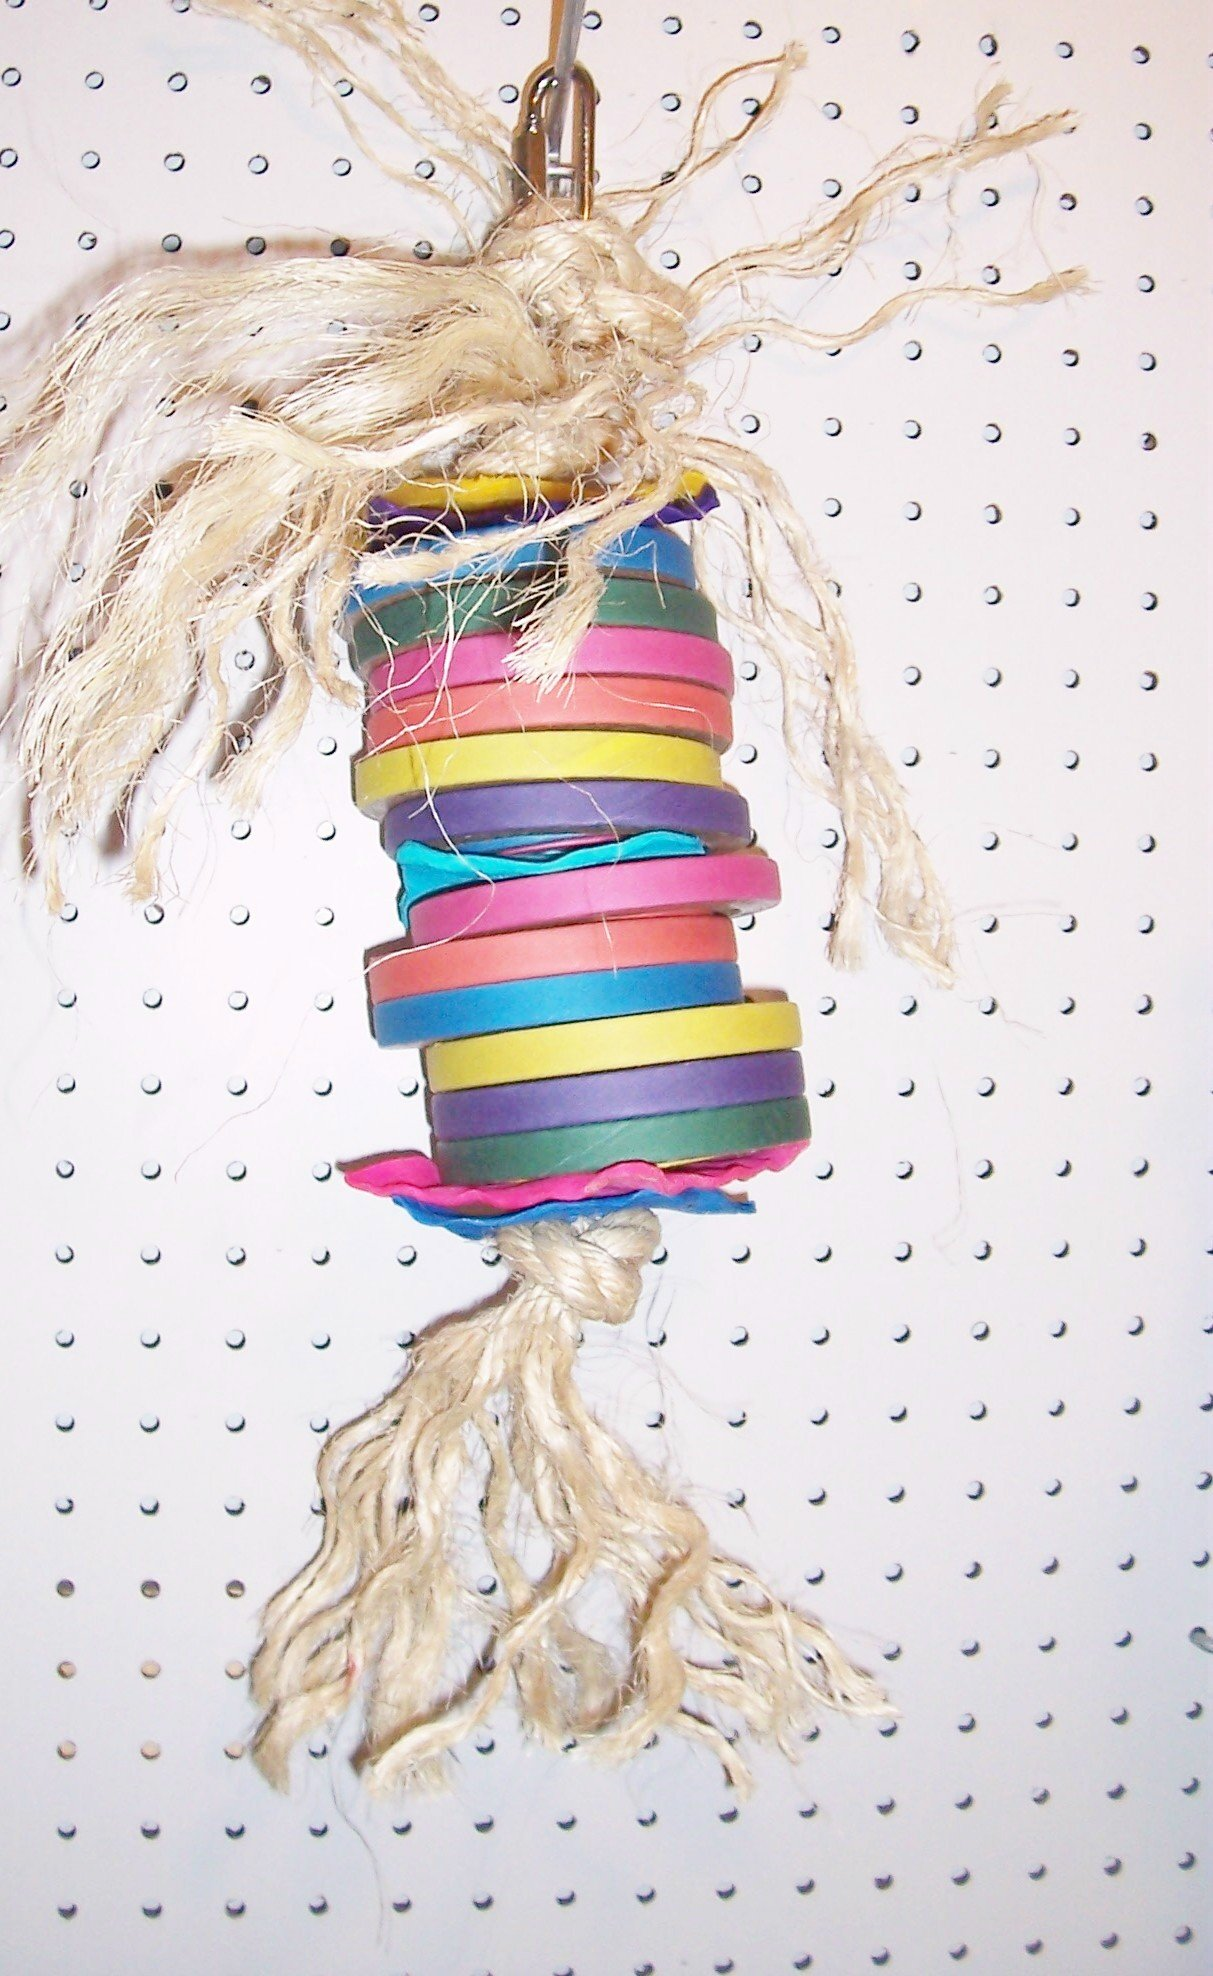 Bagel Stacker Bird Toy Parrots Macaws Cockatoos Extra Large 19'' Long